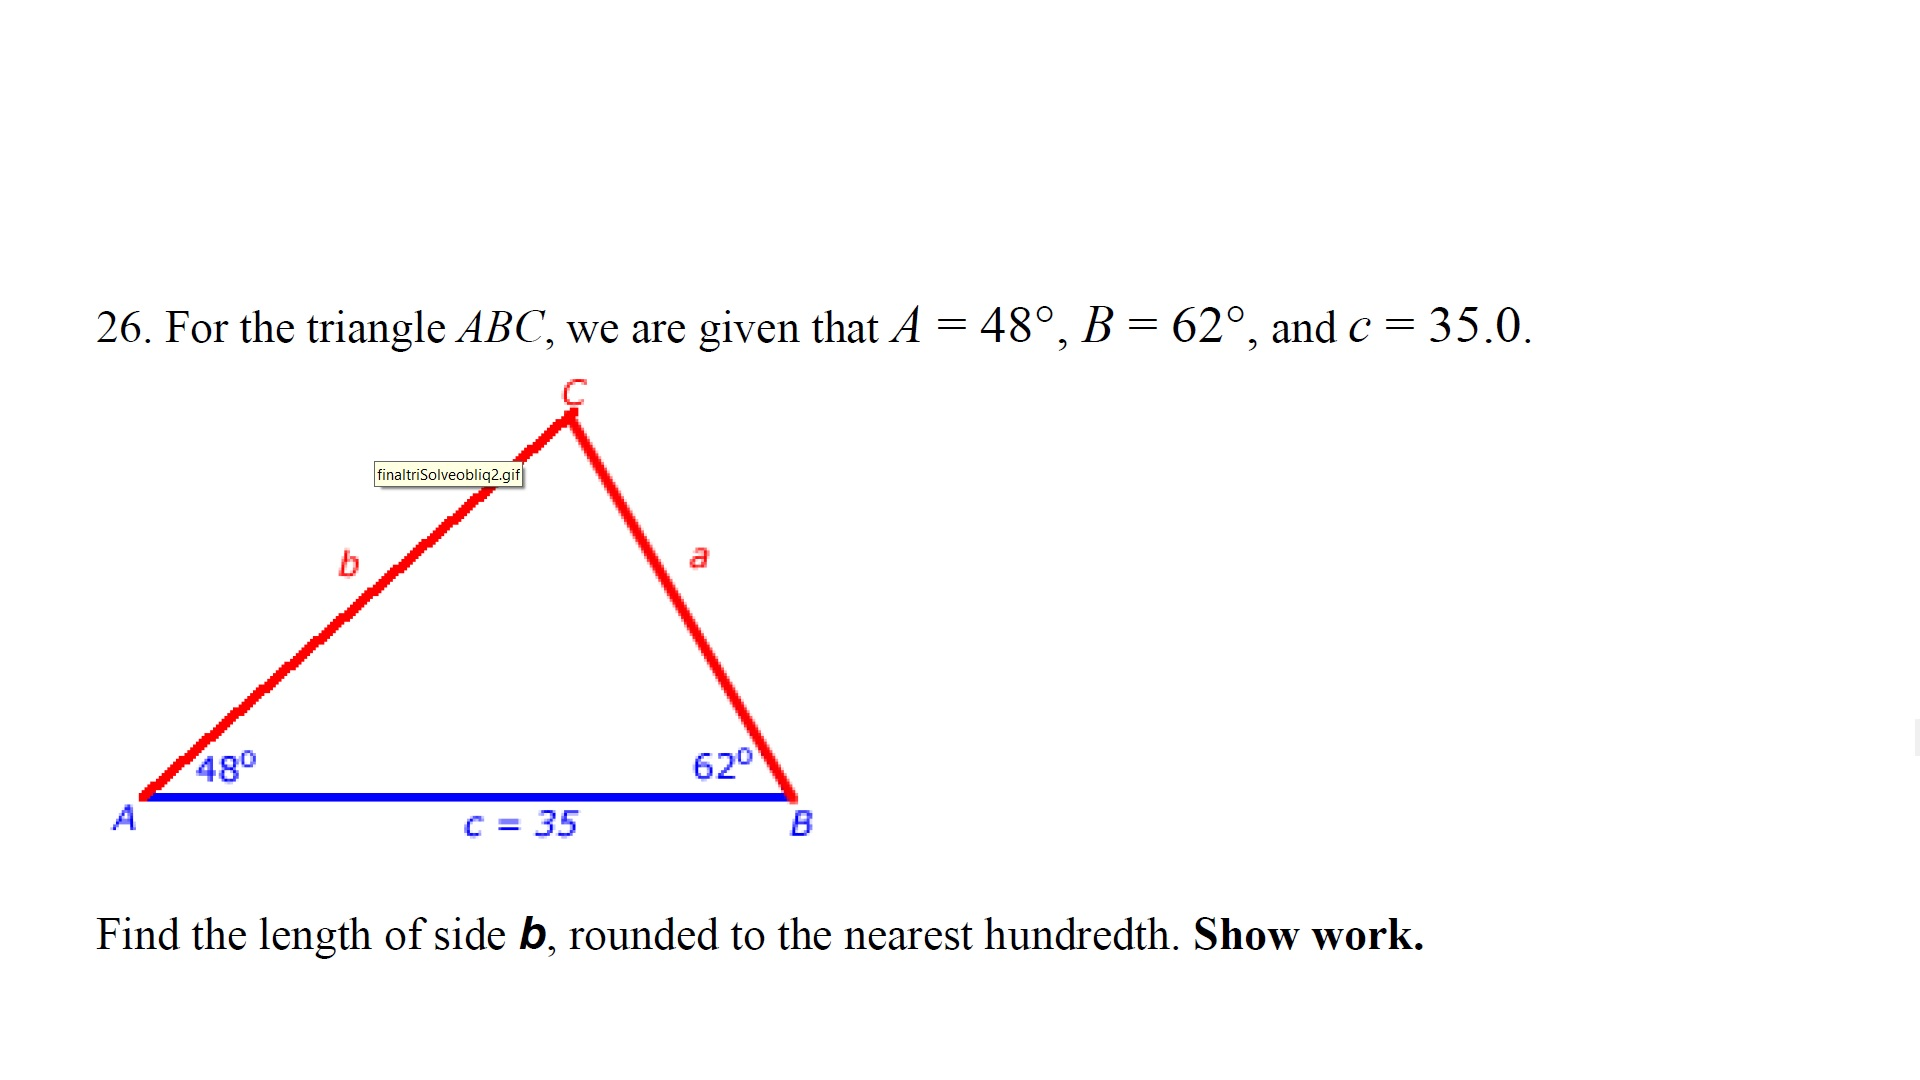 26. For the triangle ABC, we are given that A 48°, B 62°, and c = 35.0 finaltriSolveobliq2.gif b 480 A 620 C 35 В Find the length of side b, rounded to the nearest hundredth. Show work.